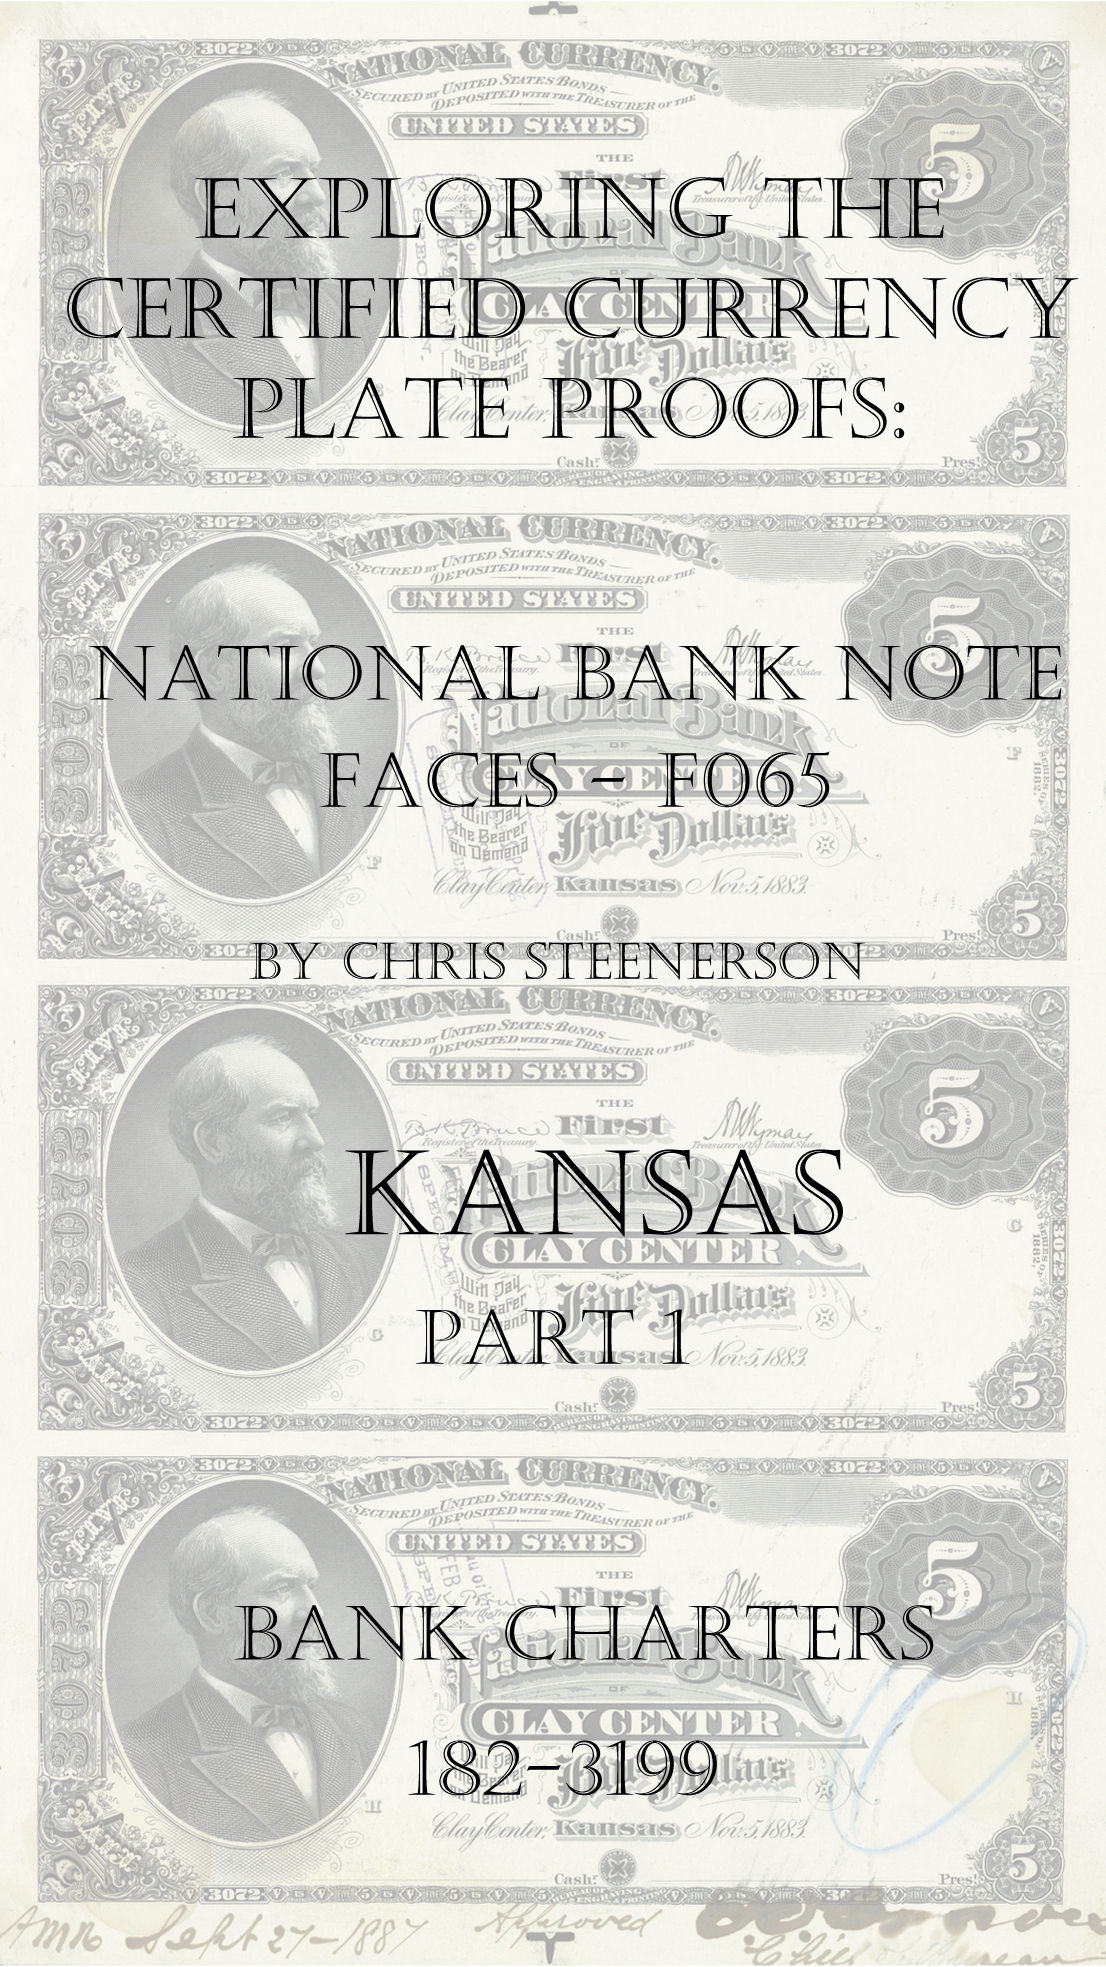 Kansas National Bank Note Currency Proofs